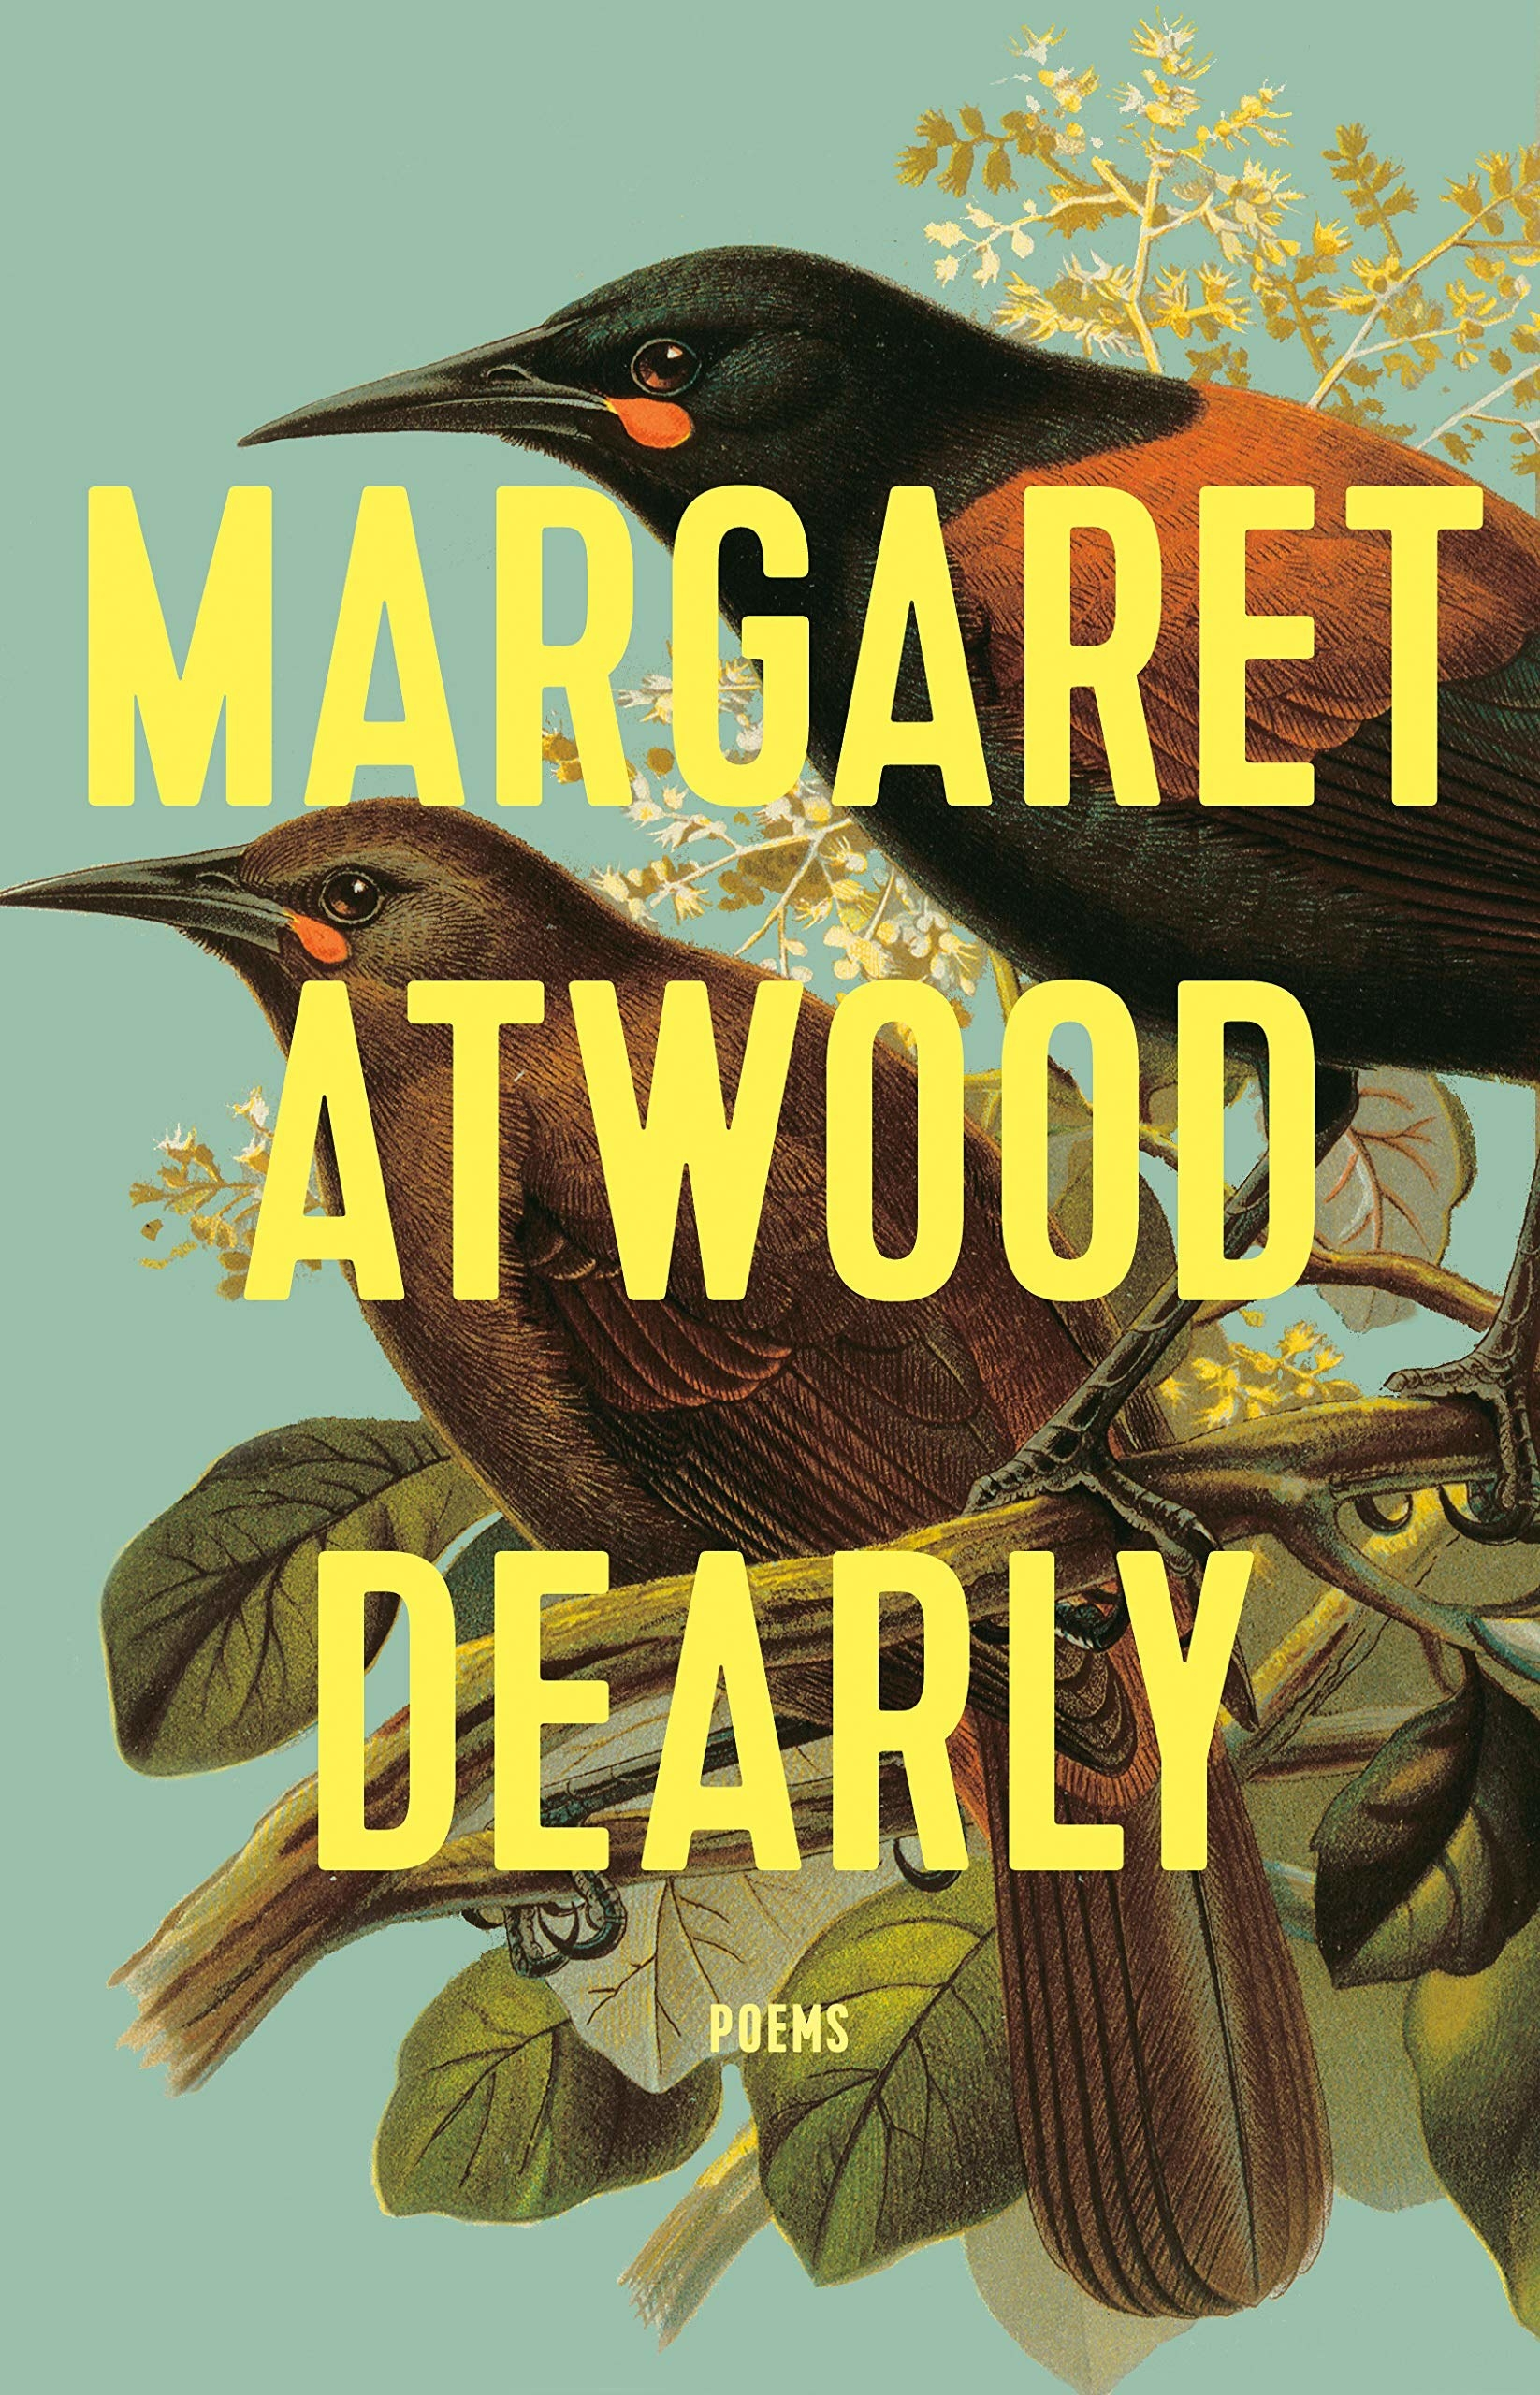 The cover of Margaret Atwood's collection of poems titled Dearly